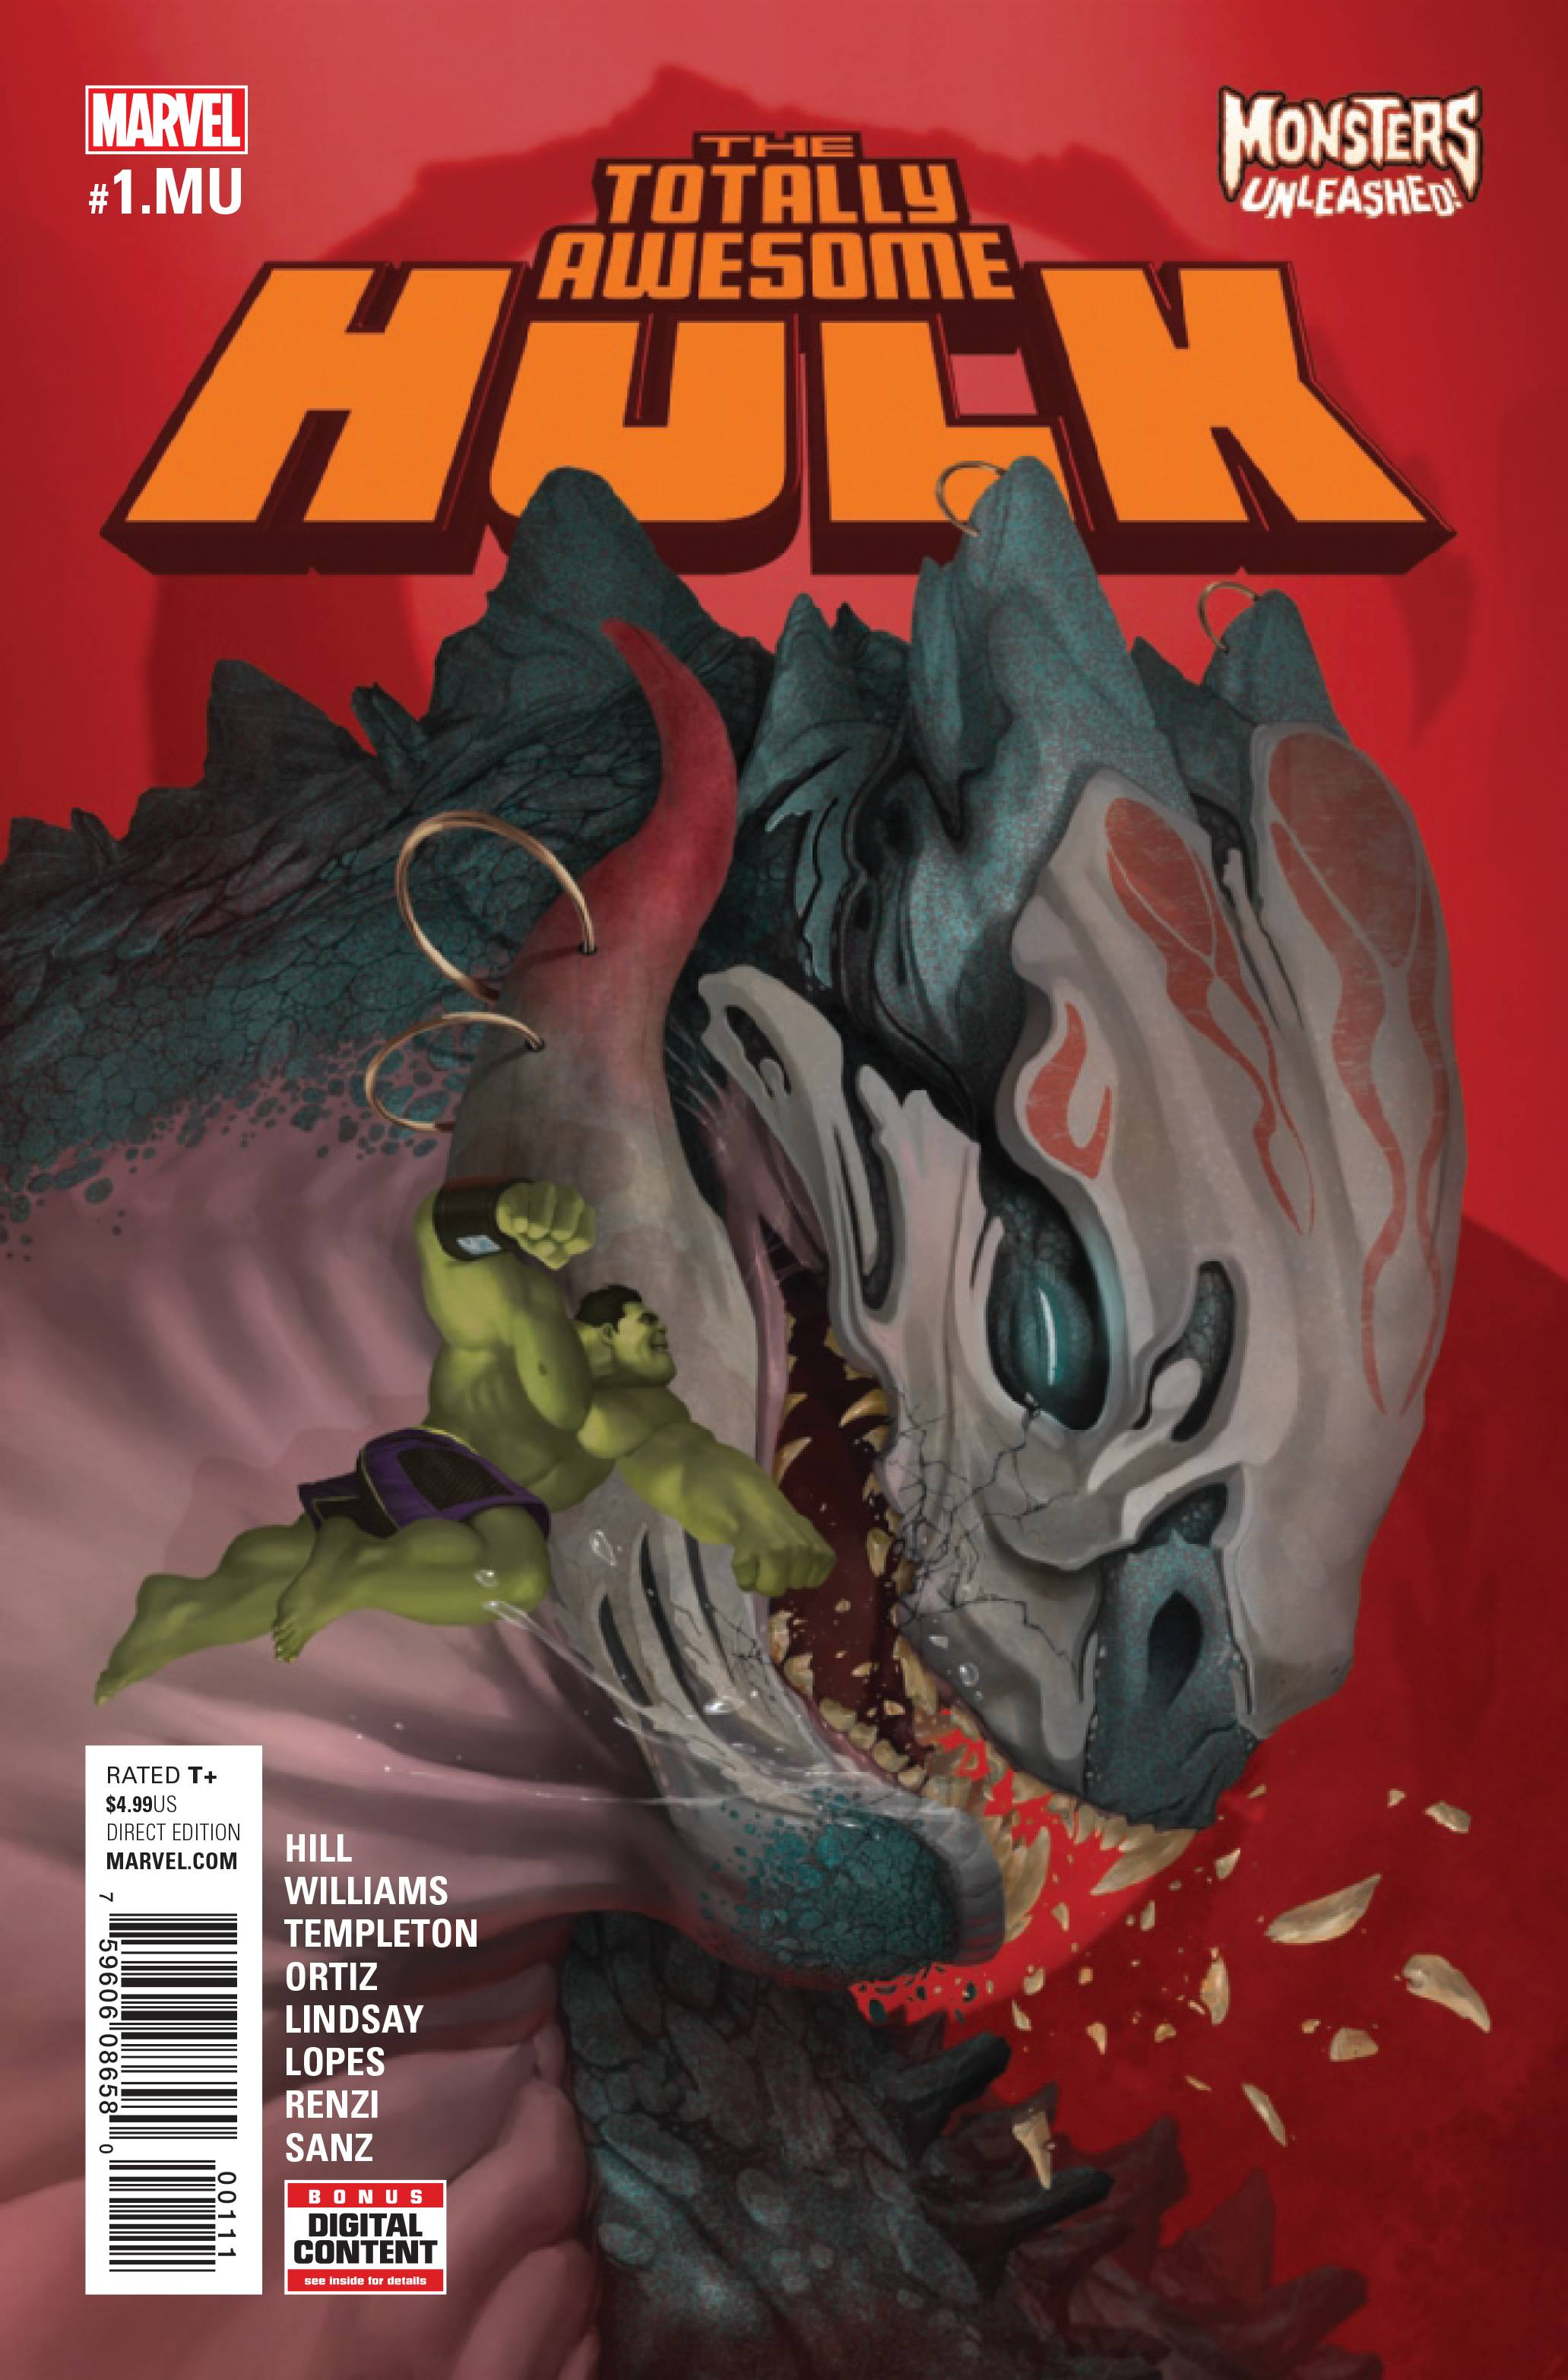 TOTALLY AWESOME HULK #1.MU